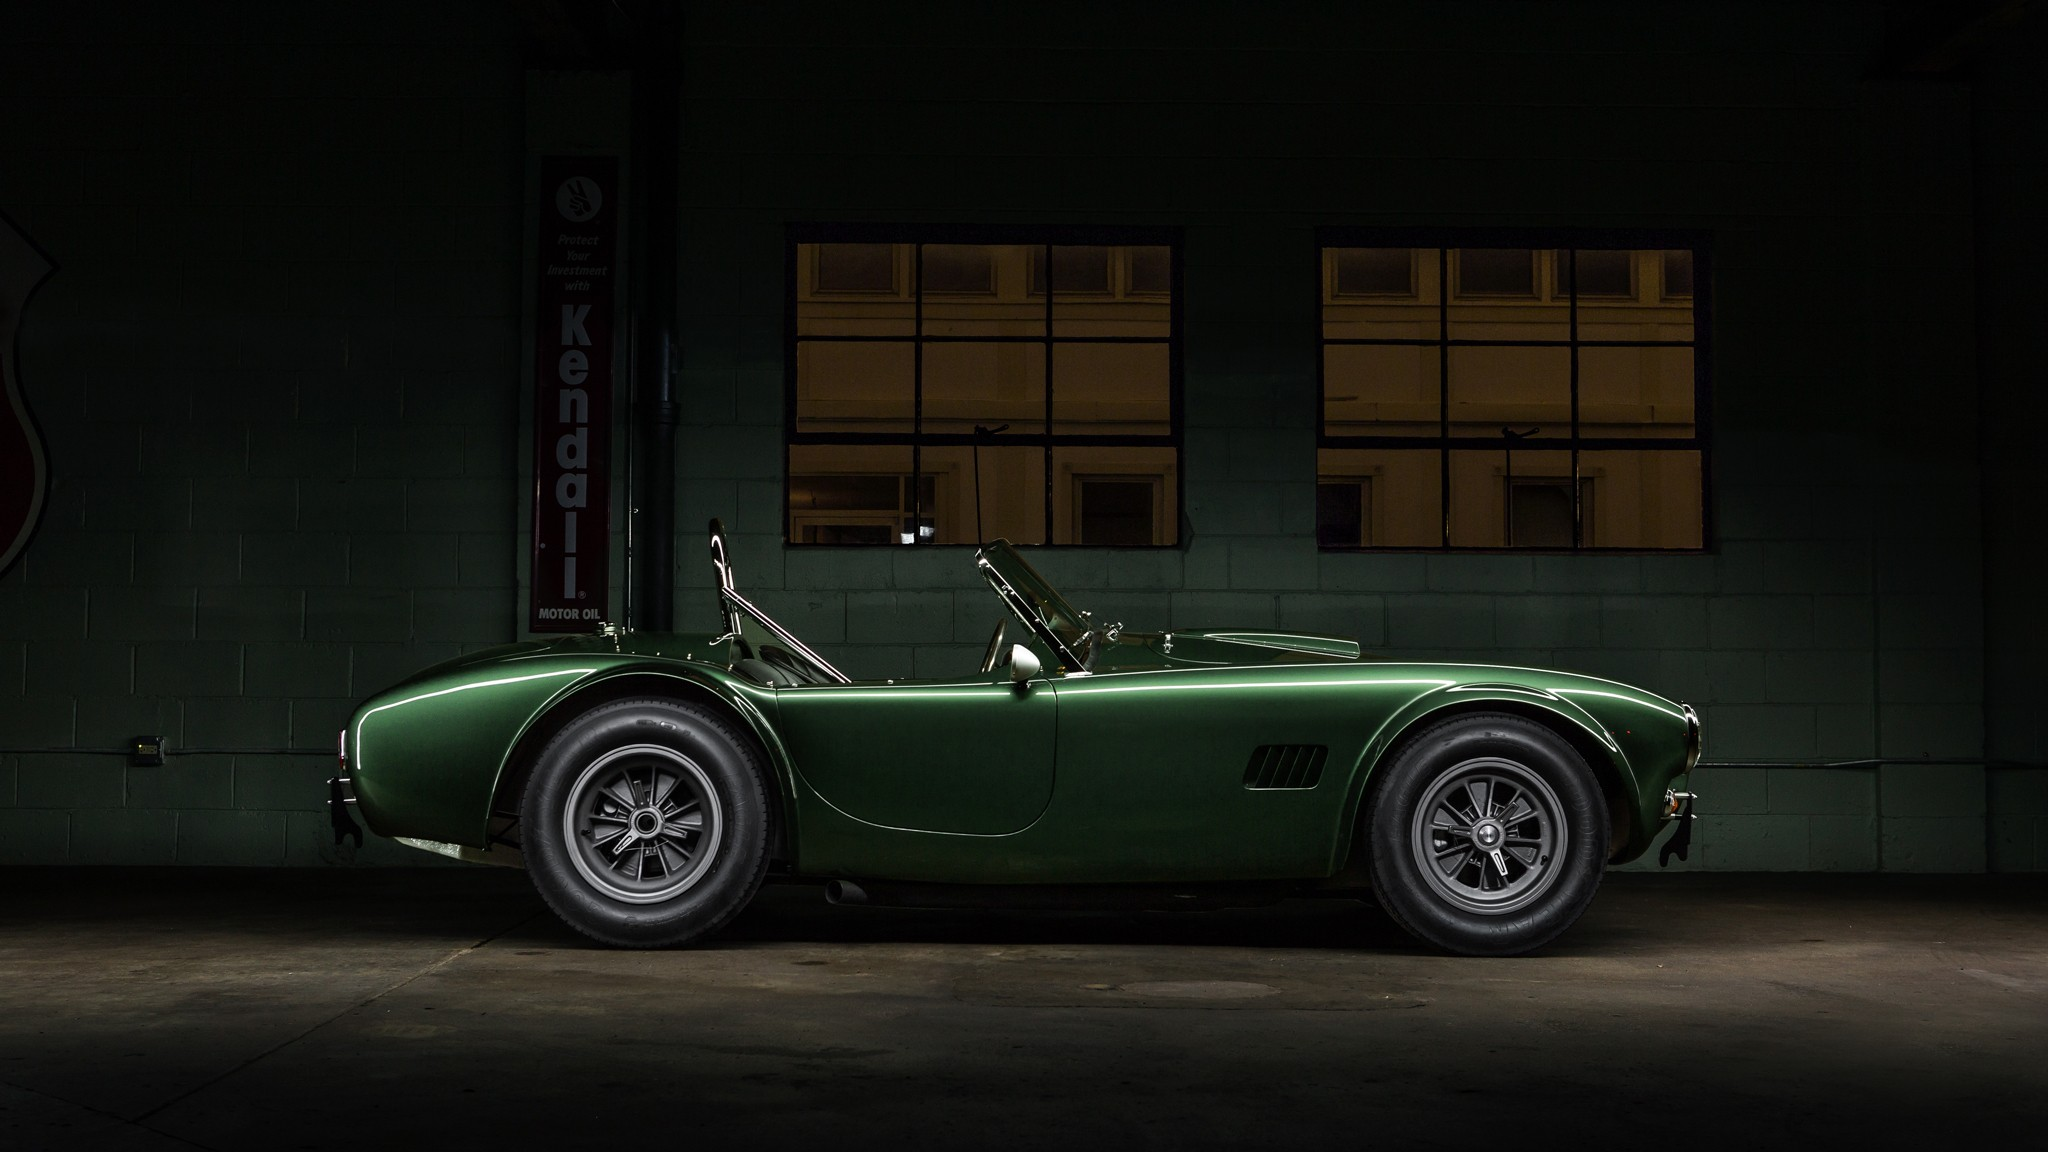 3840x1080 Wallpaper Classic Car Car Green Cars Vehicle Shelby Shelby Cobra Wallpapers